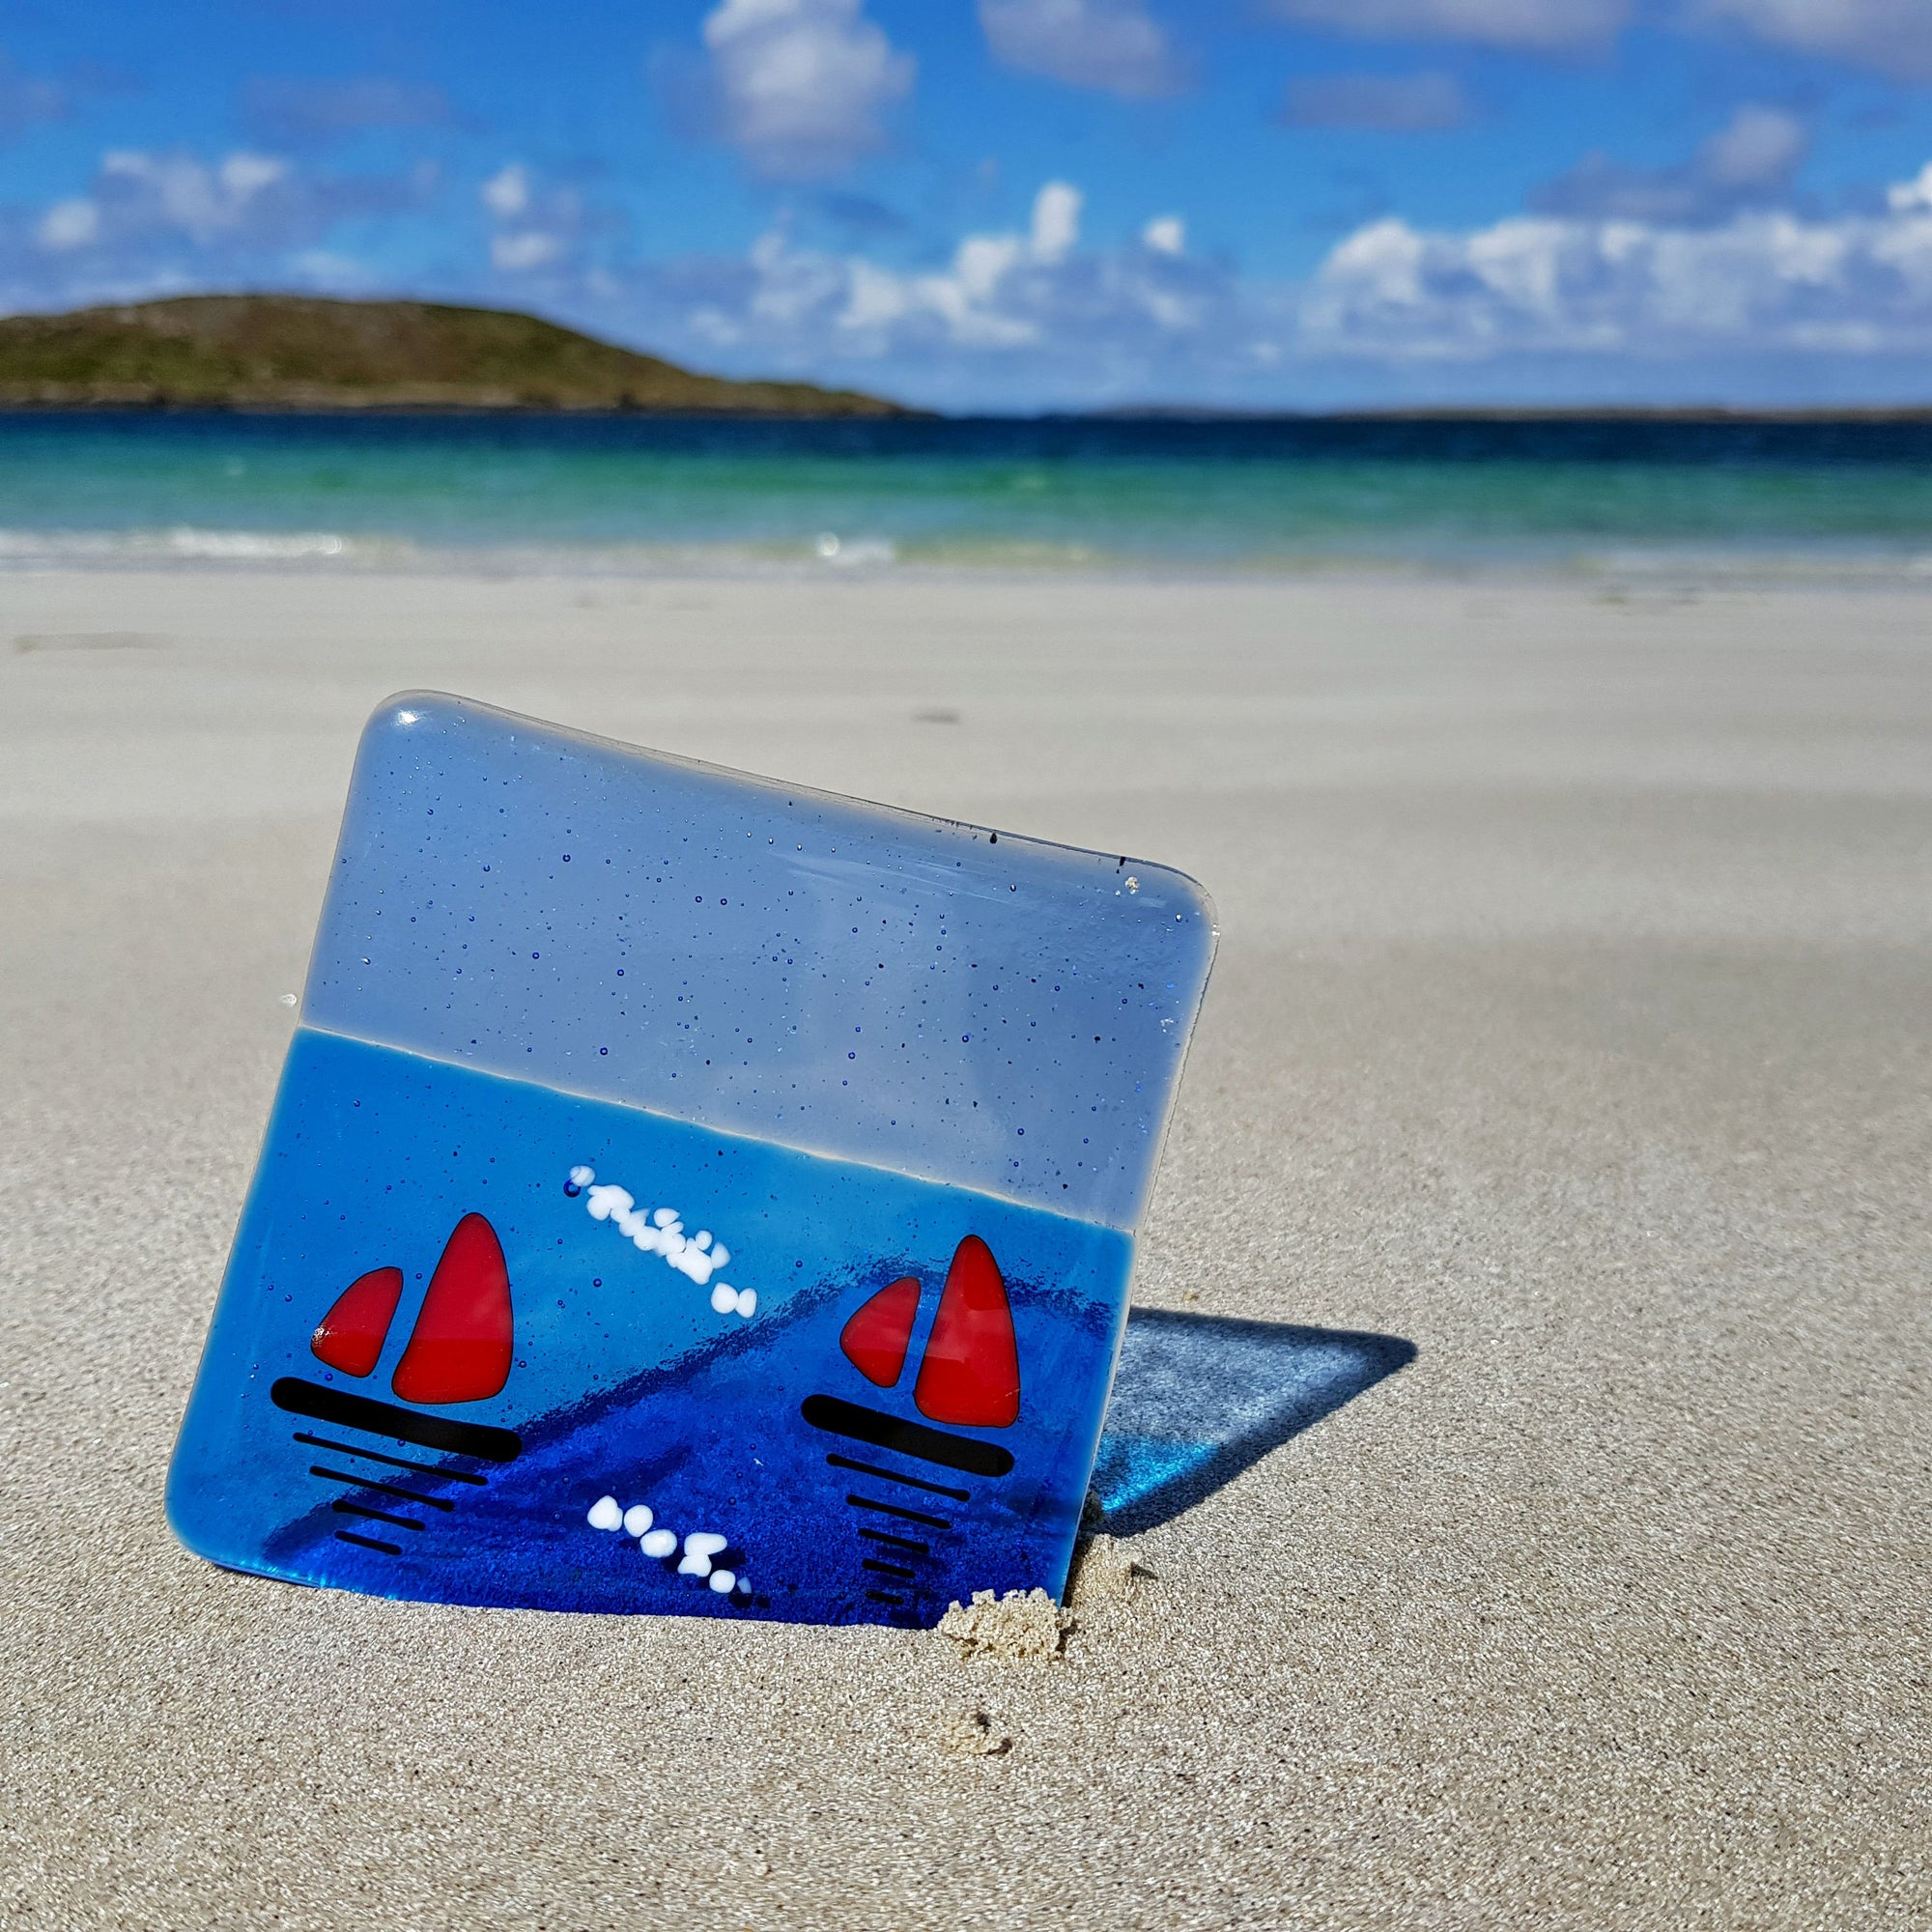 A glass coaster featuring two sailboats with bright red sails. An ideal small gift idea from Connemara Blue